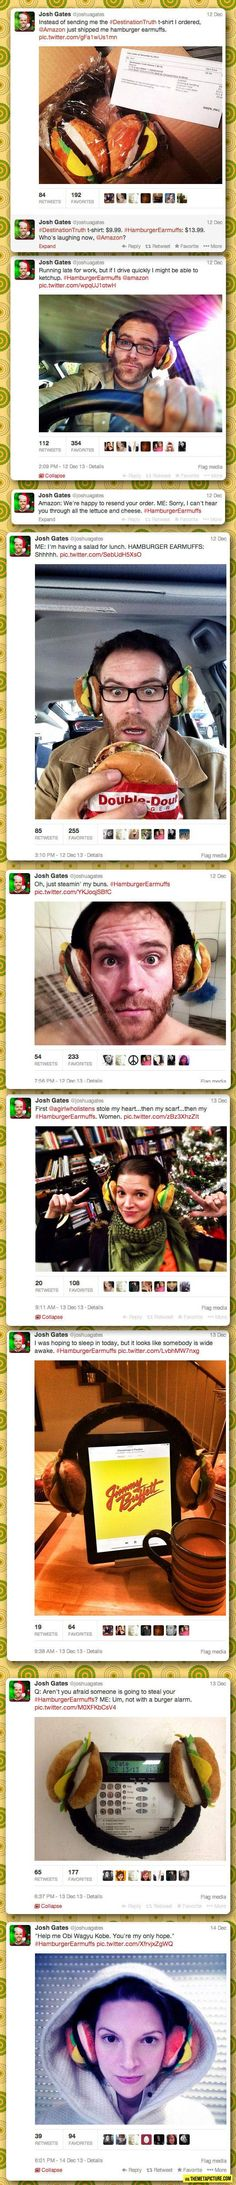 Hamburger Earmuffs, the best Amazon mistake ever… I love josh